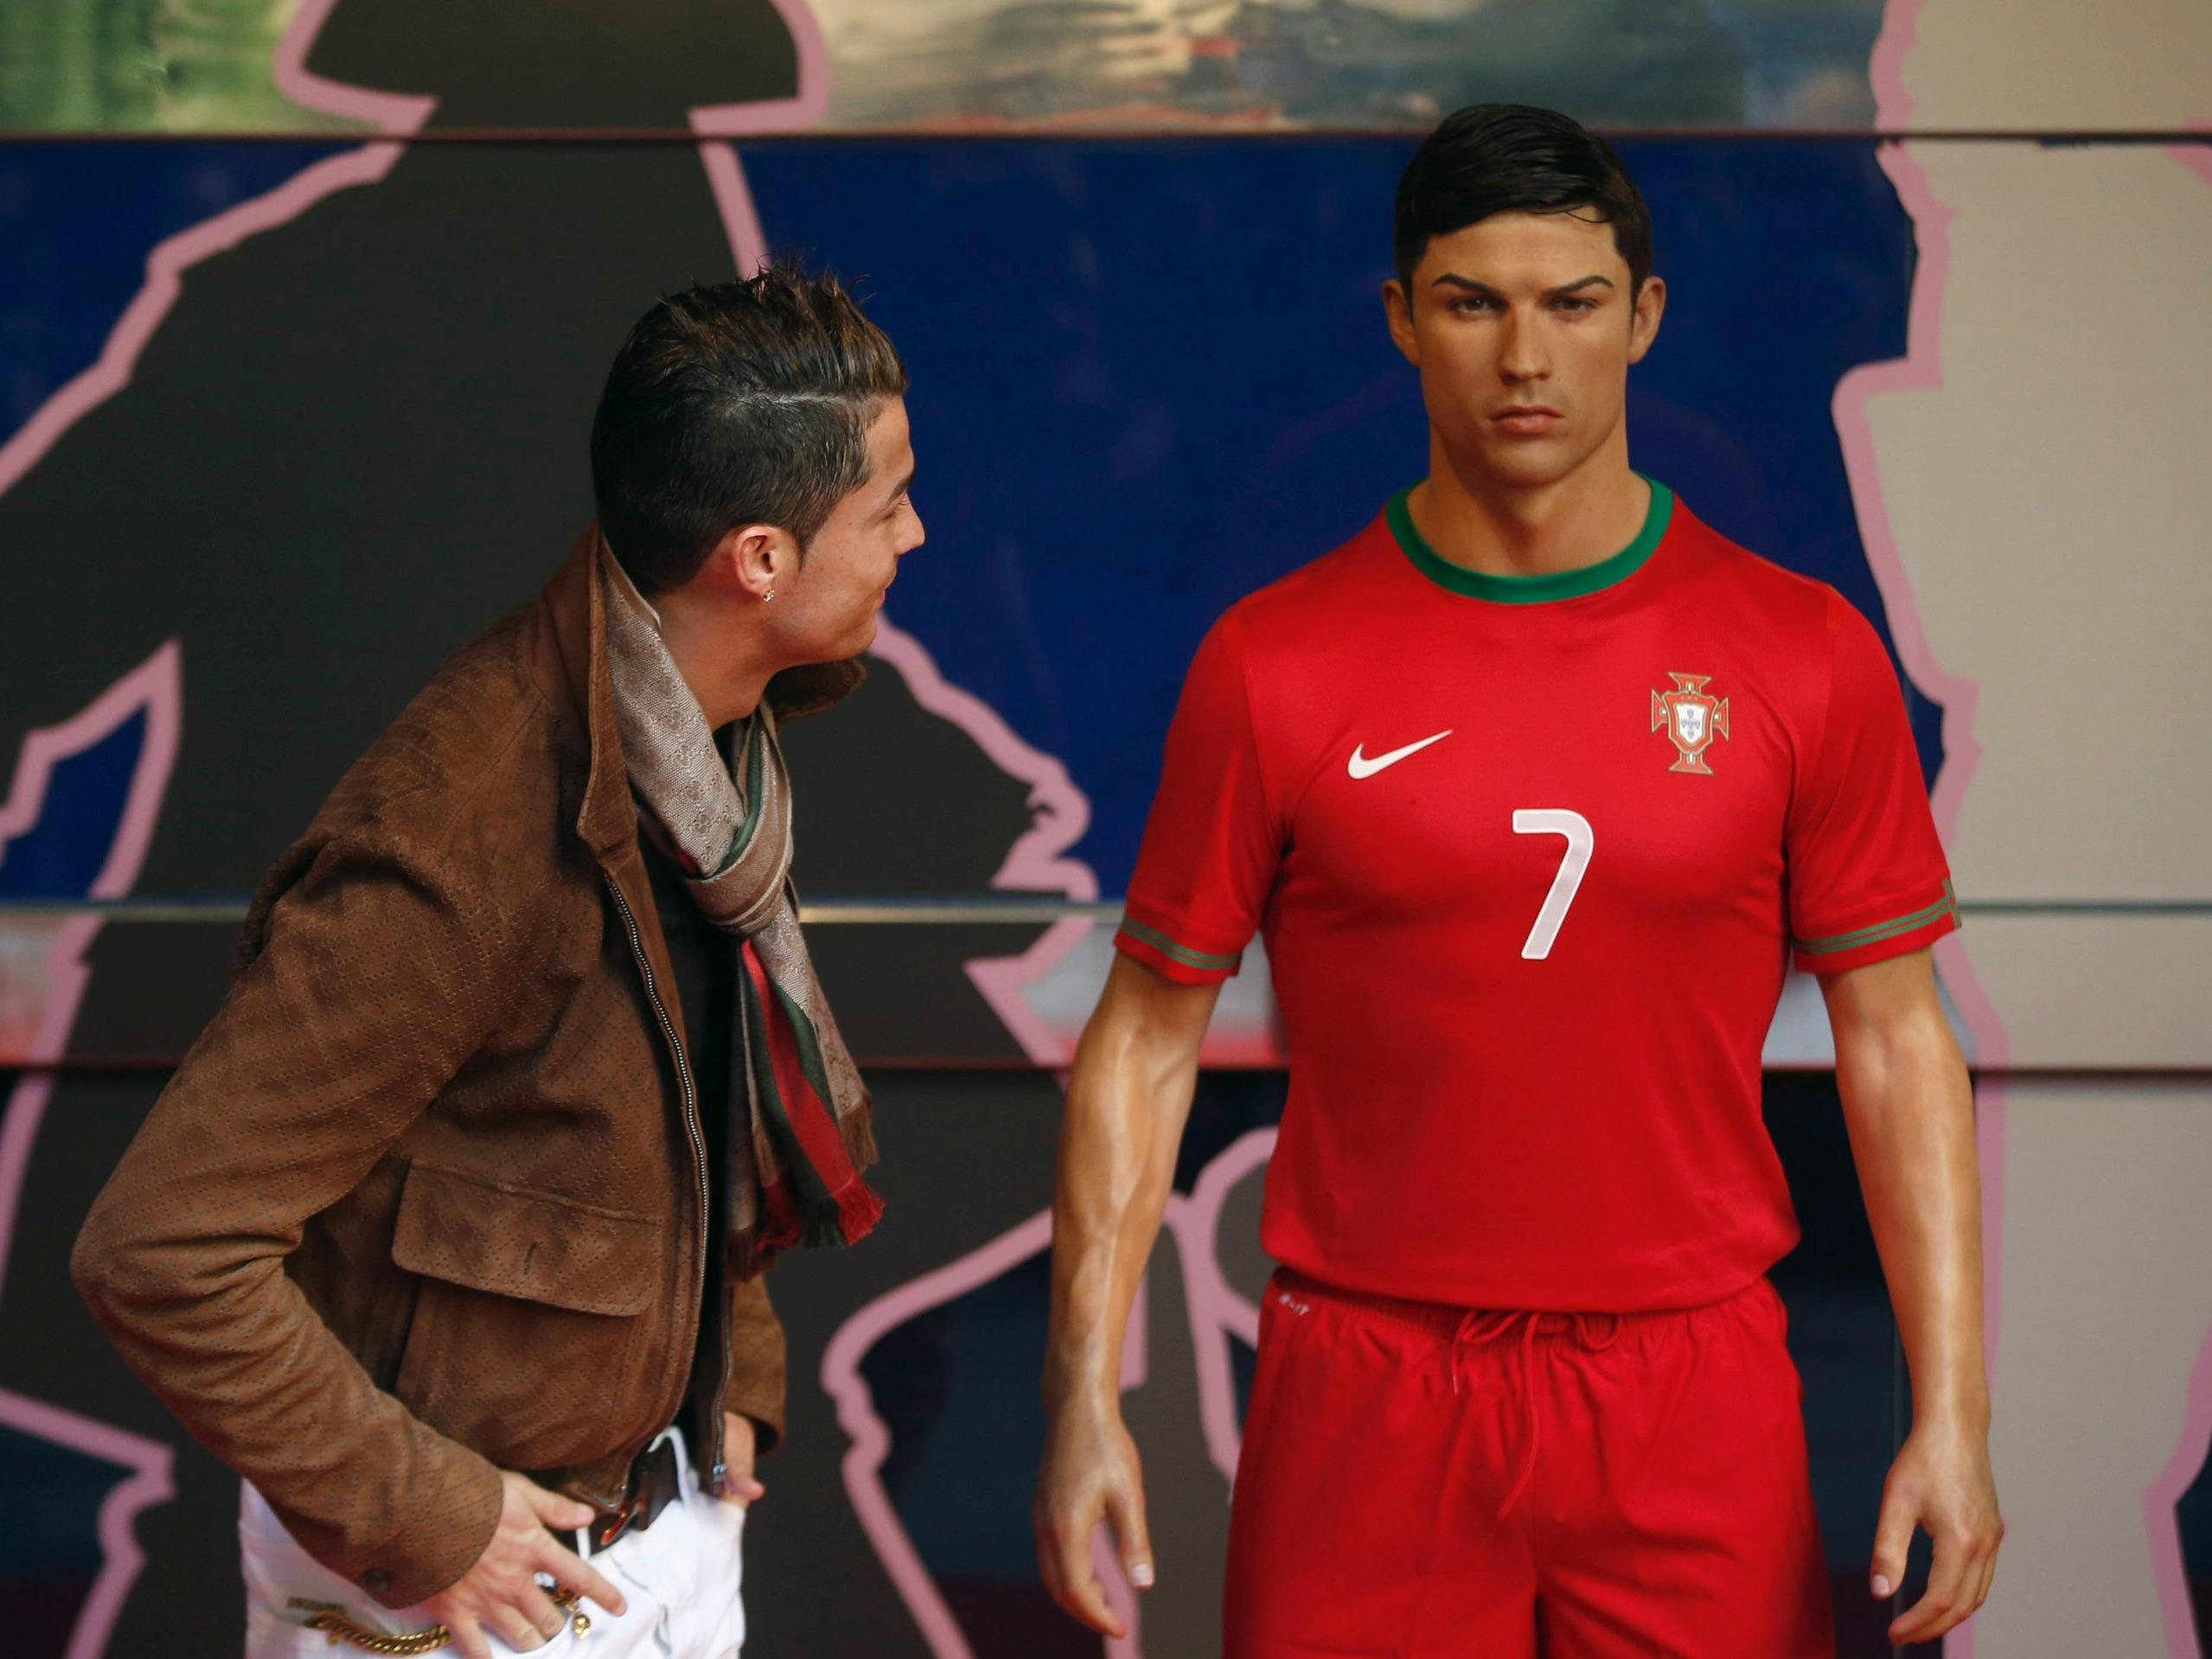 Cristiano Ronaldo liked his wax statue so much he paid the artist $31,000 to make one the footballer could keep